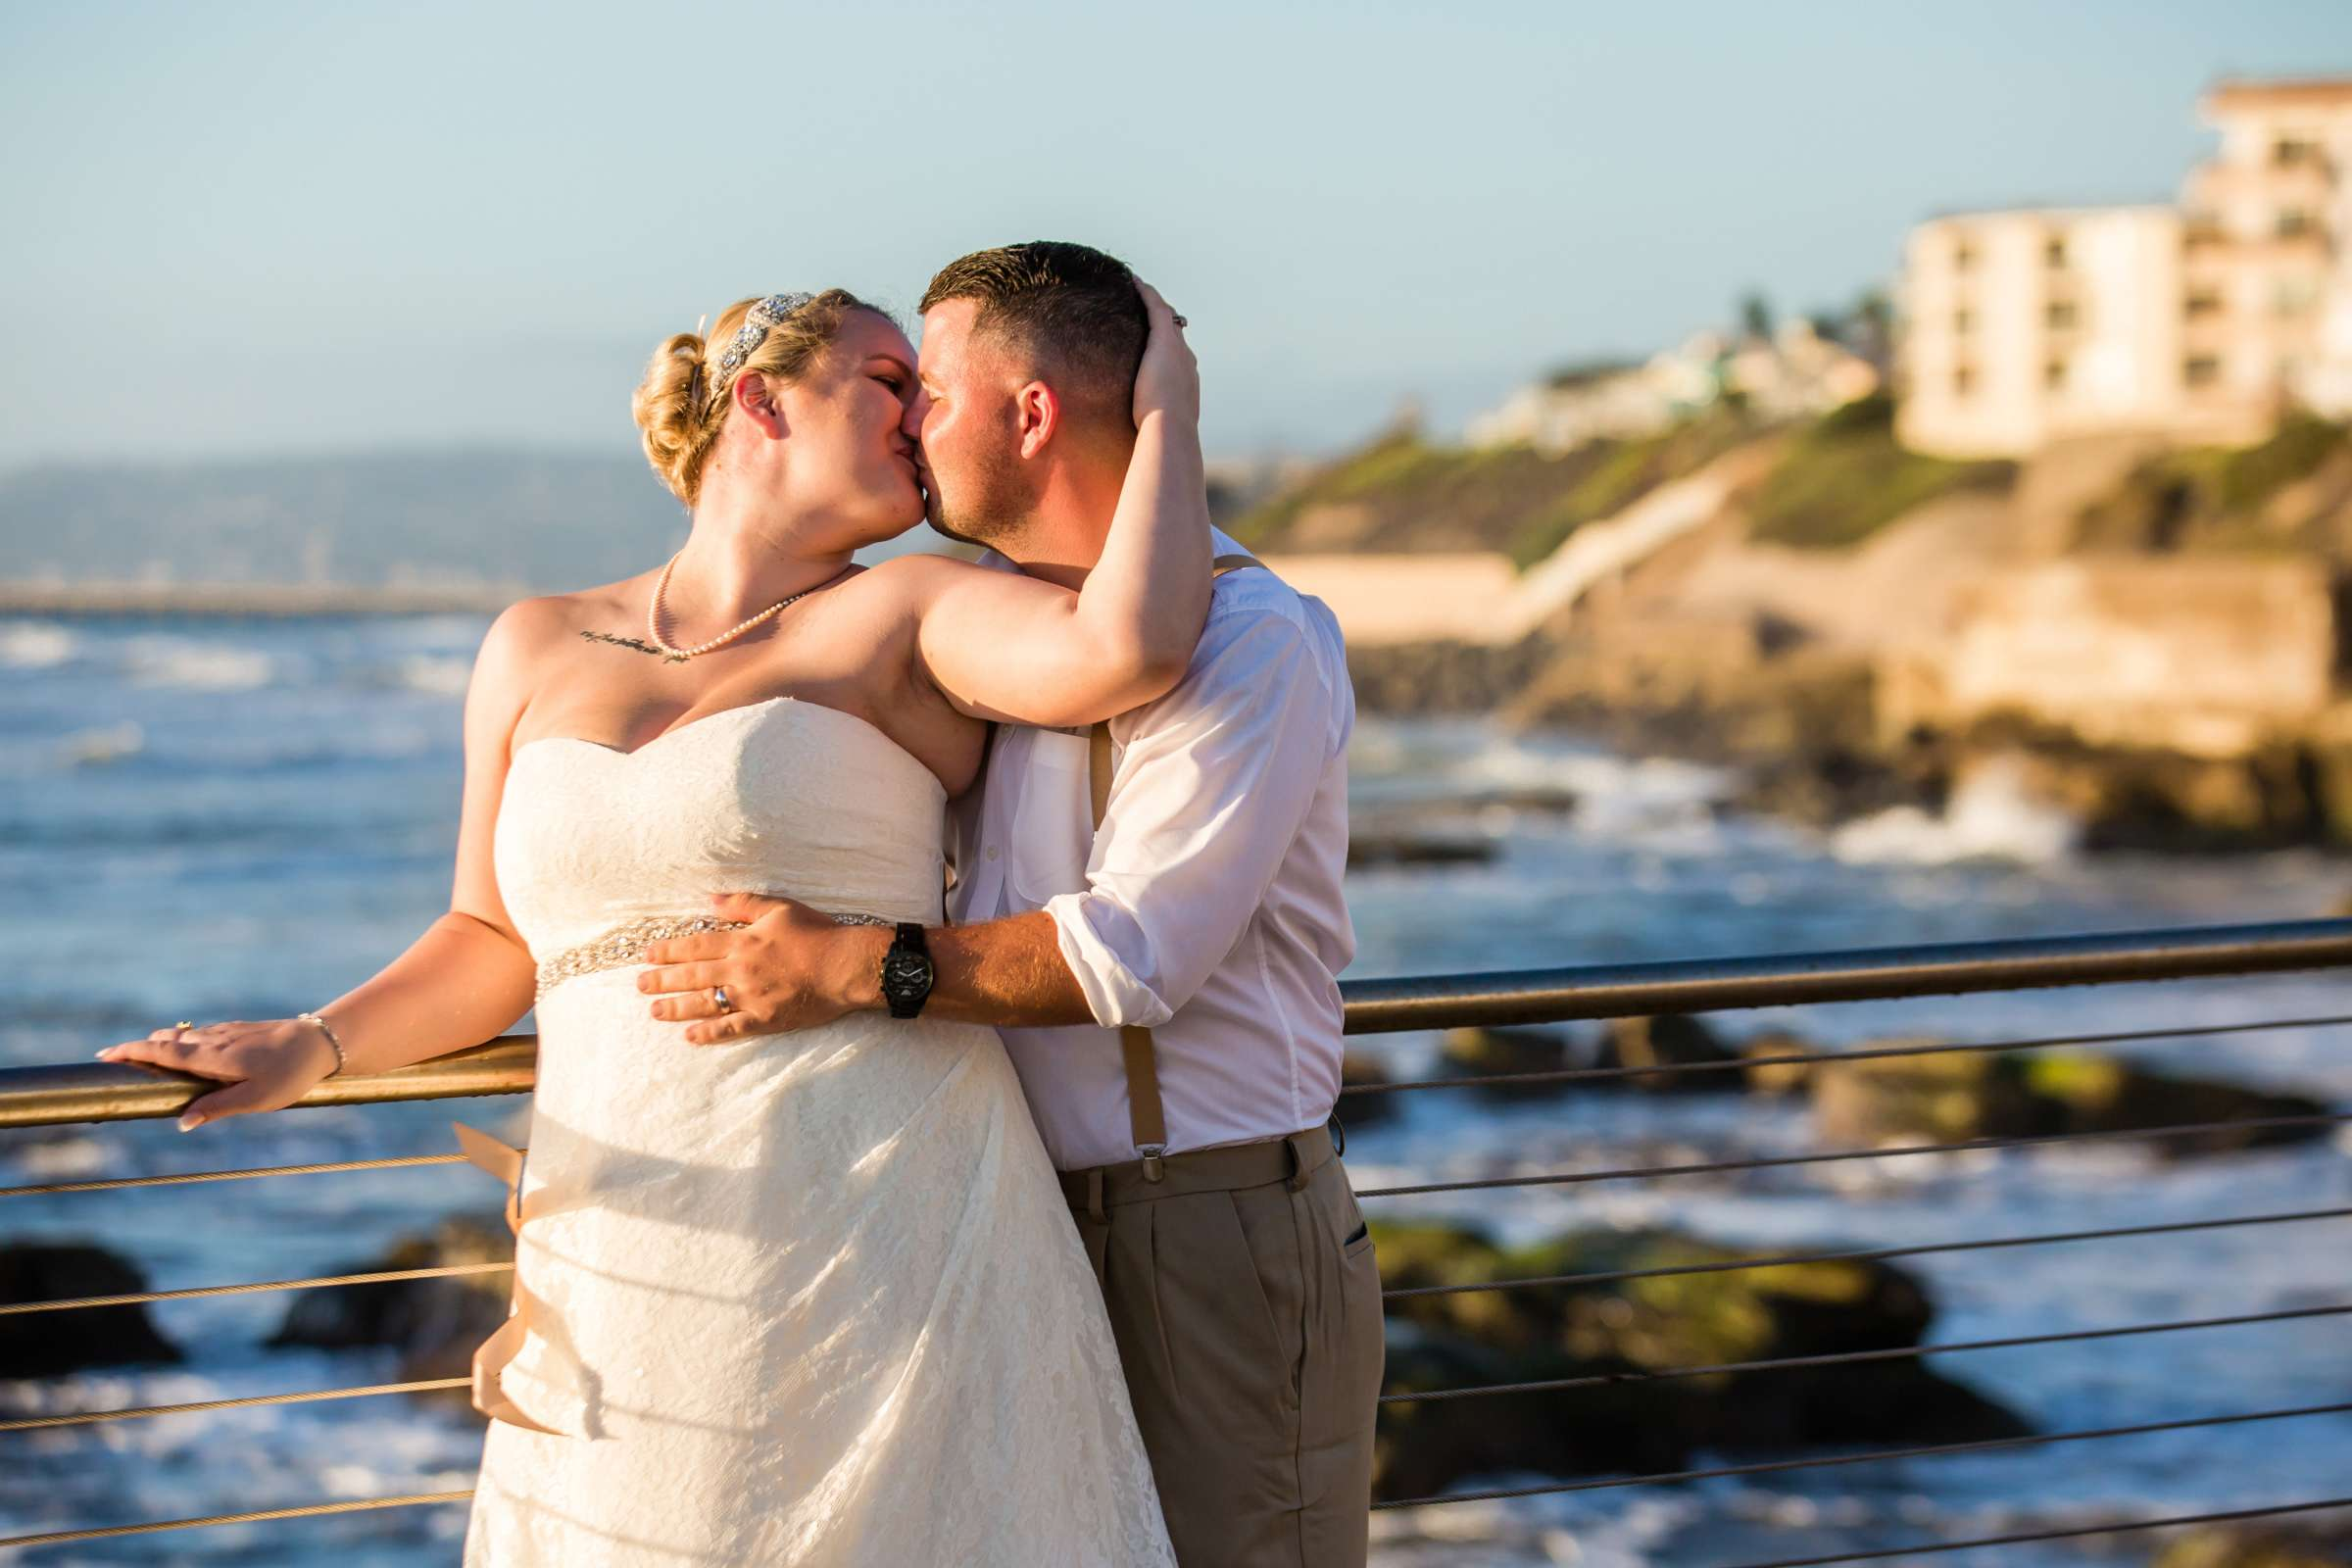 The Inn at Sunset Cliffs Wedding, Melinda and Benjamin Wedding Photo #69 by True Photography